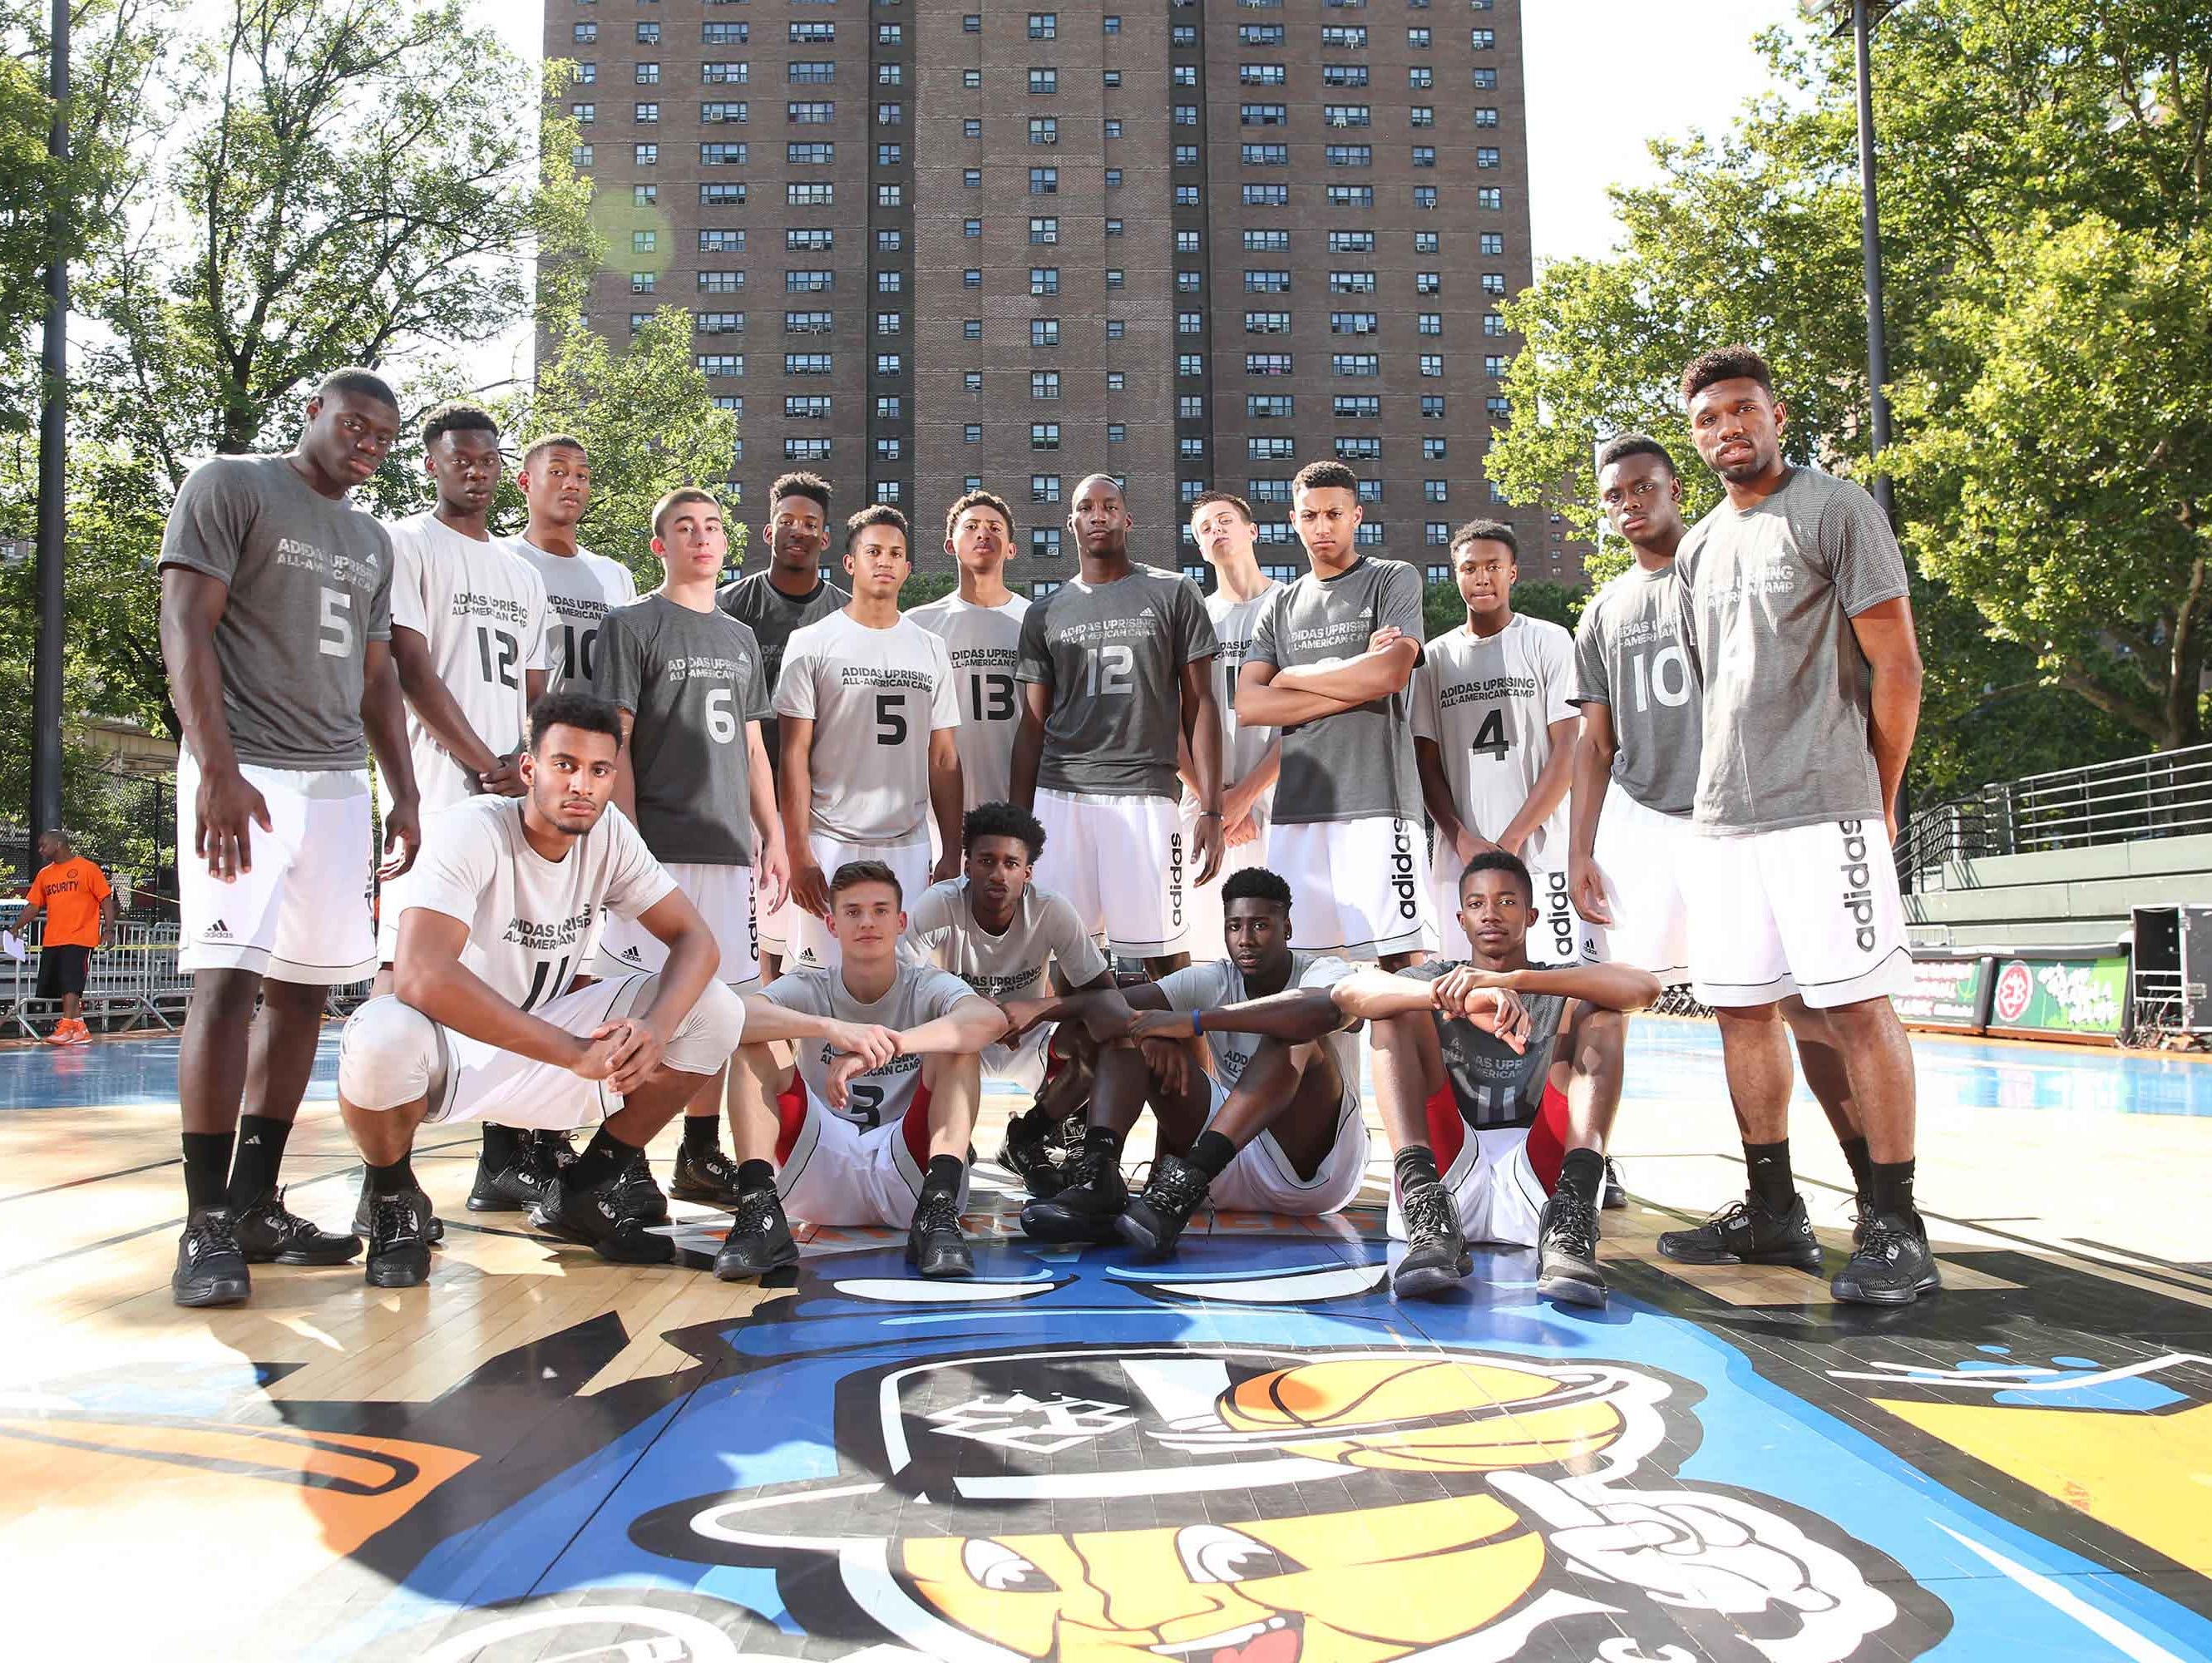 Eron Gordon (standing, far right) and Kyle Guy (seated, second from left) played on Thursday at Rucker Park